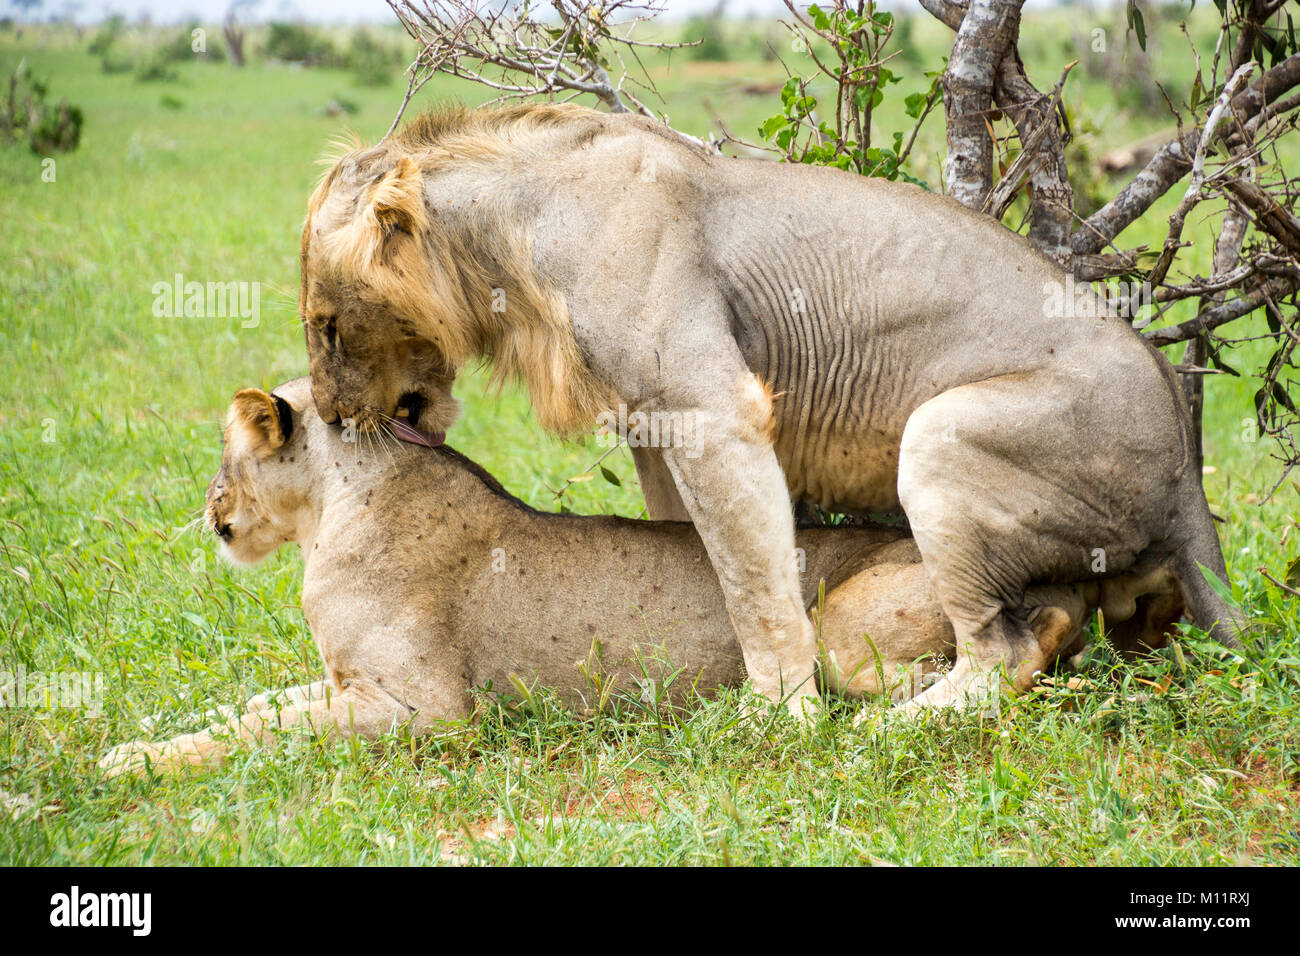 Lions Mating In The Park Stock Photo 172759066 Alamy